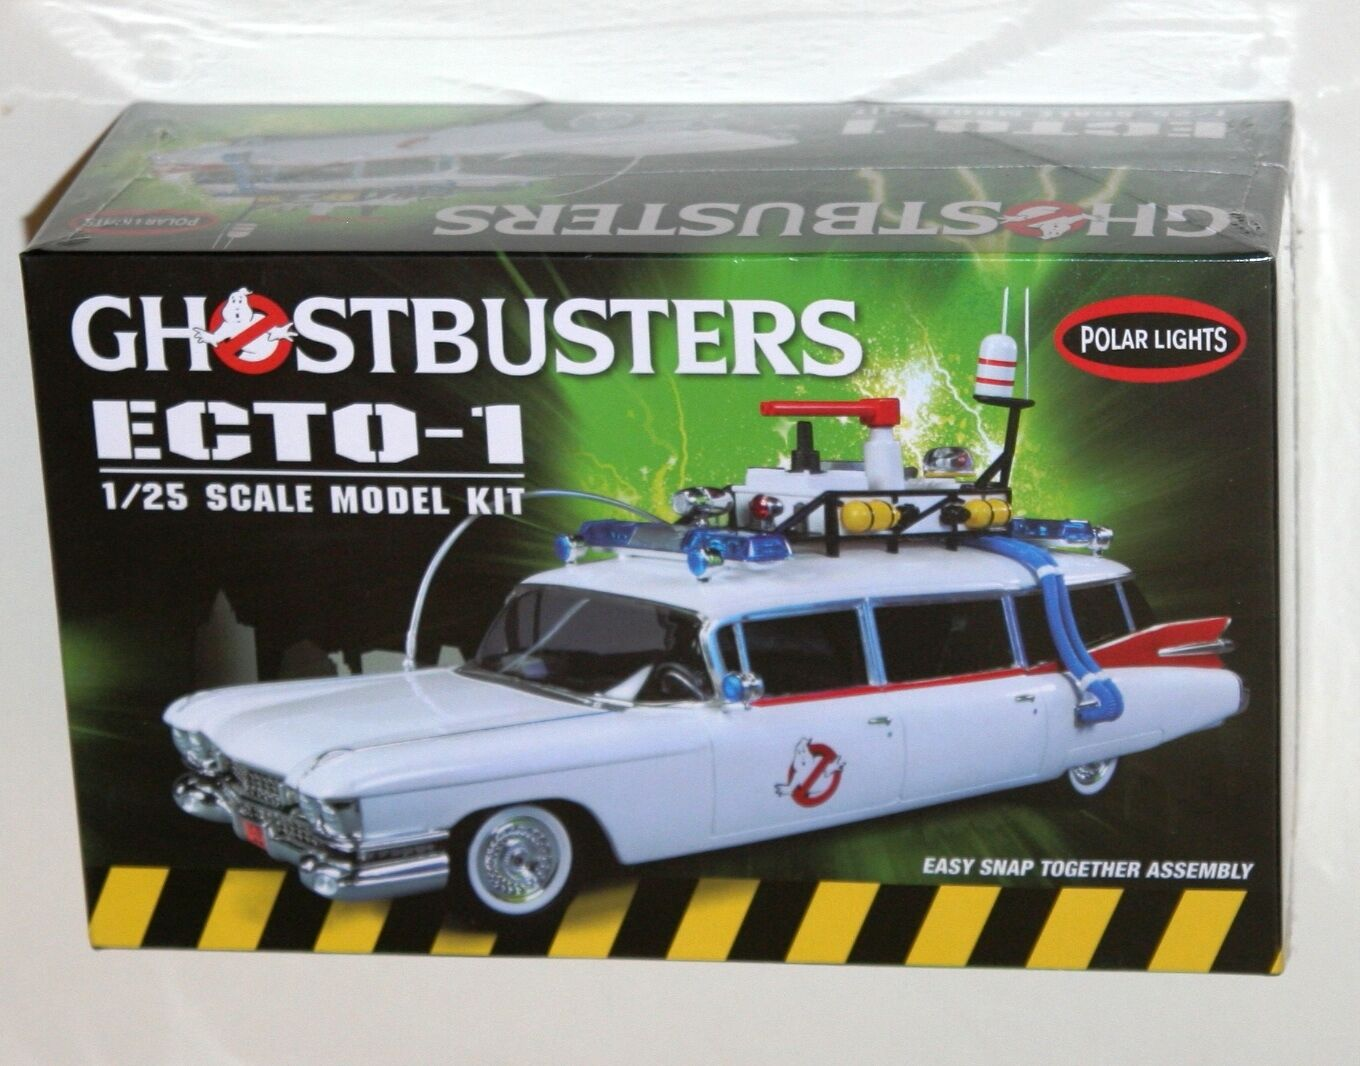 Polar Lights - GHOSTBUSTERS ECTO-1 MODEL KIT Scale 1 25 Snap Together